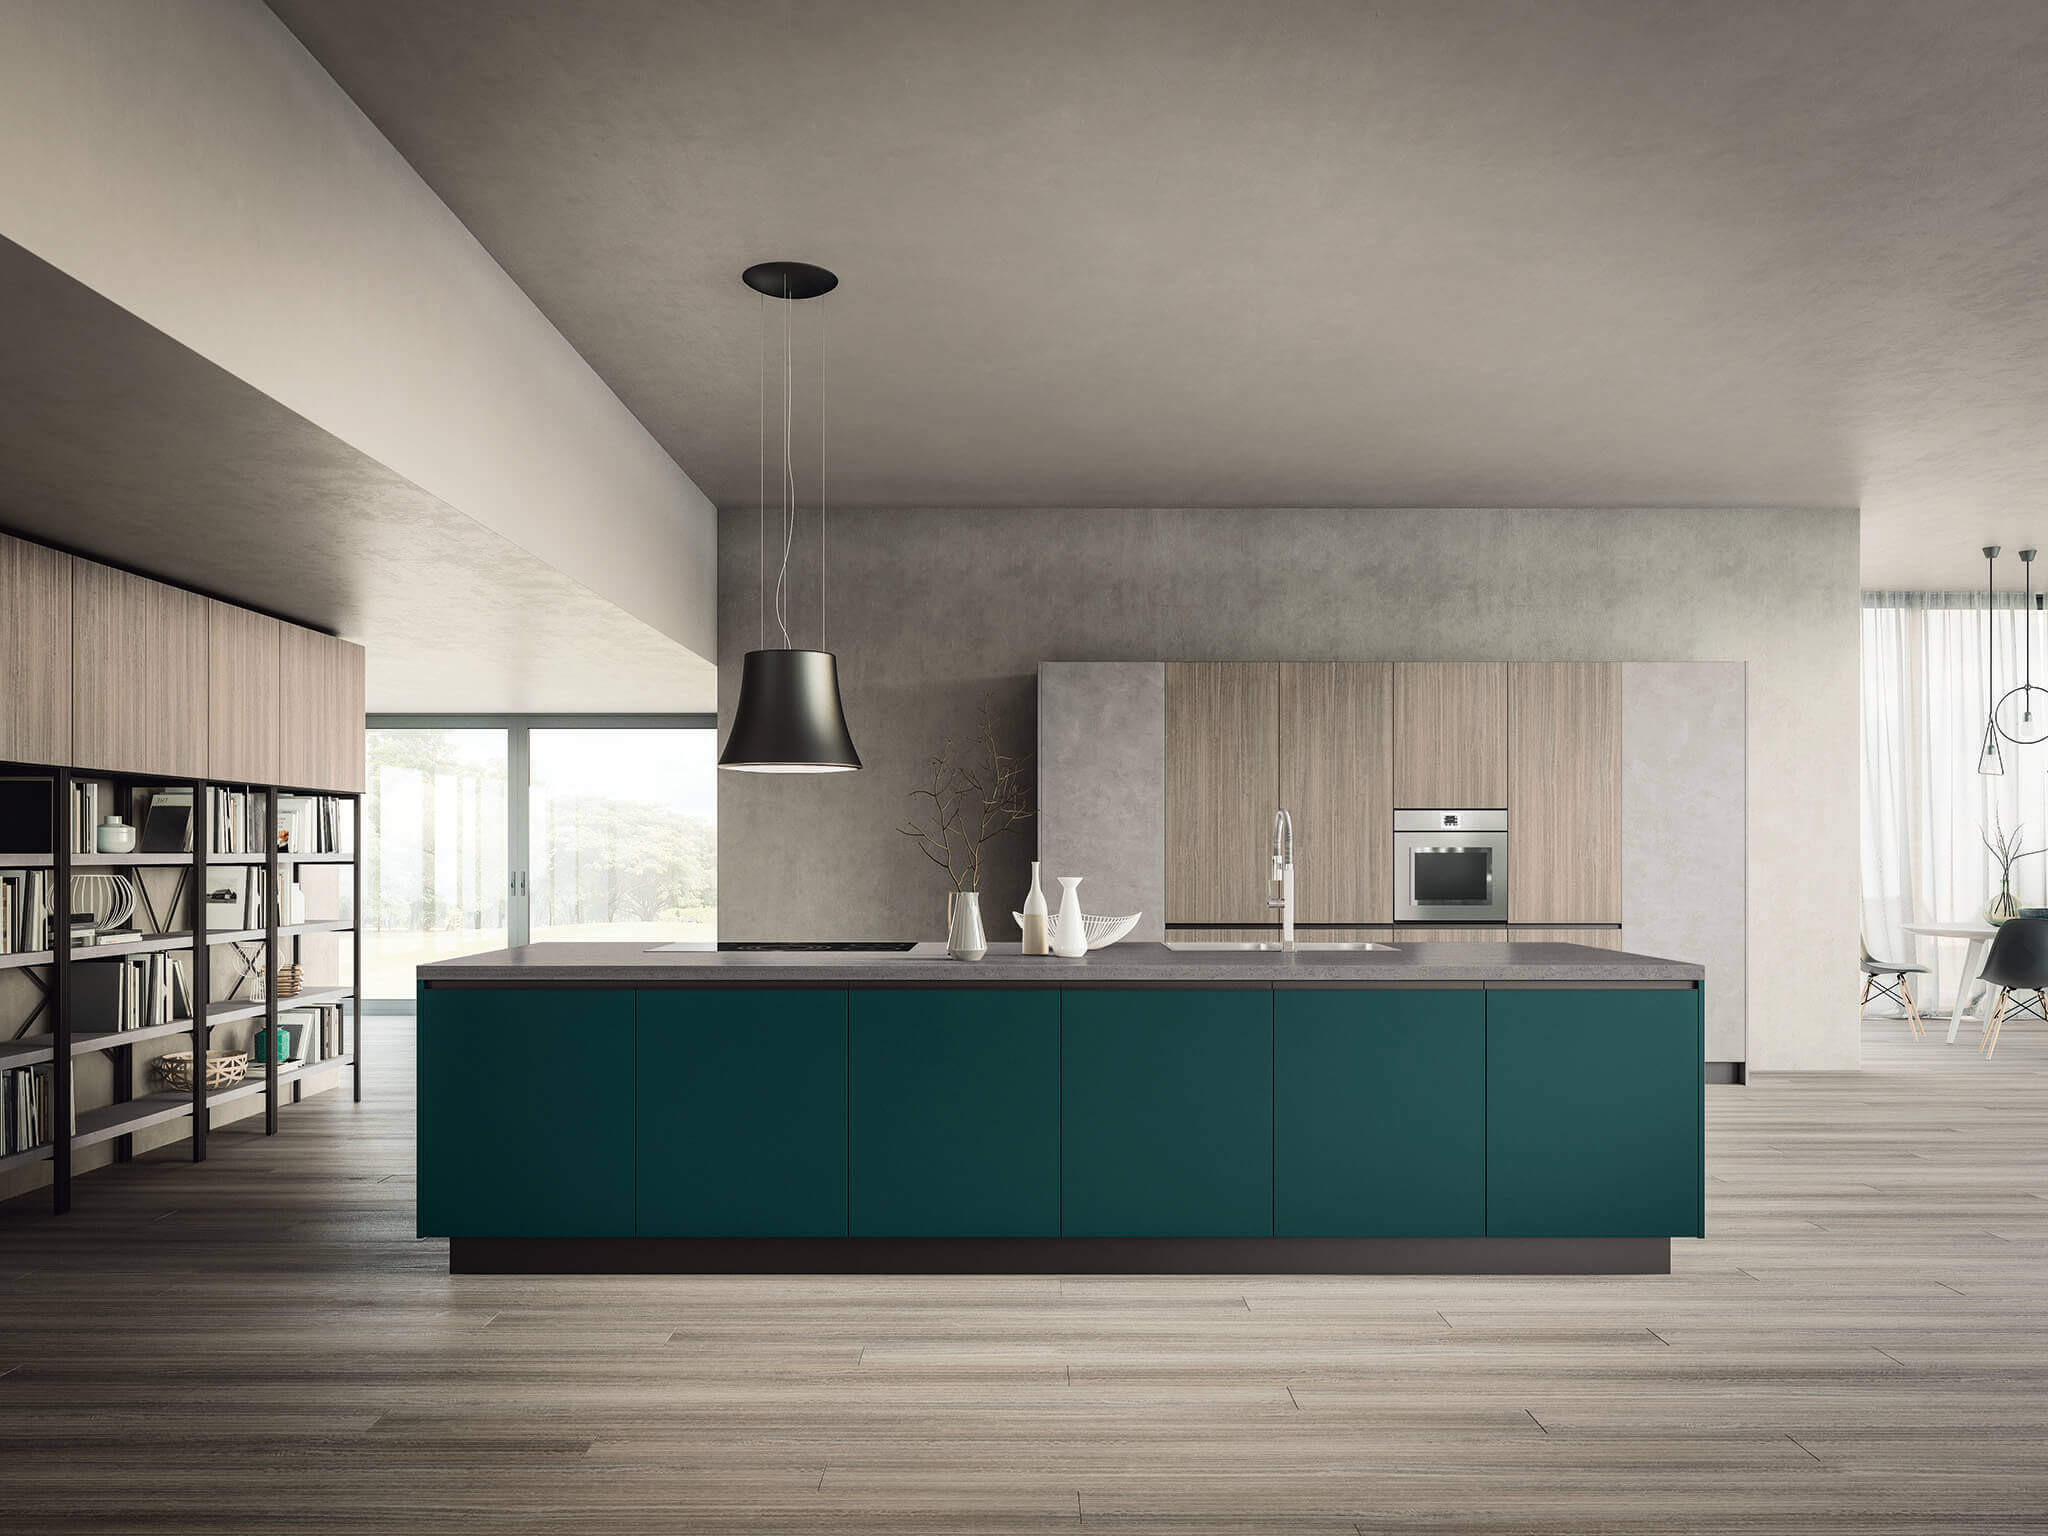 Isabel kitchen Archisesto